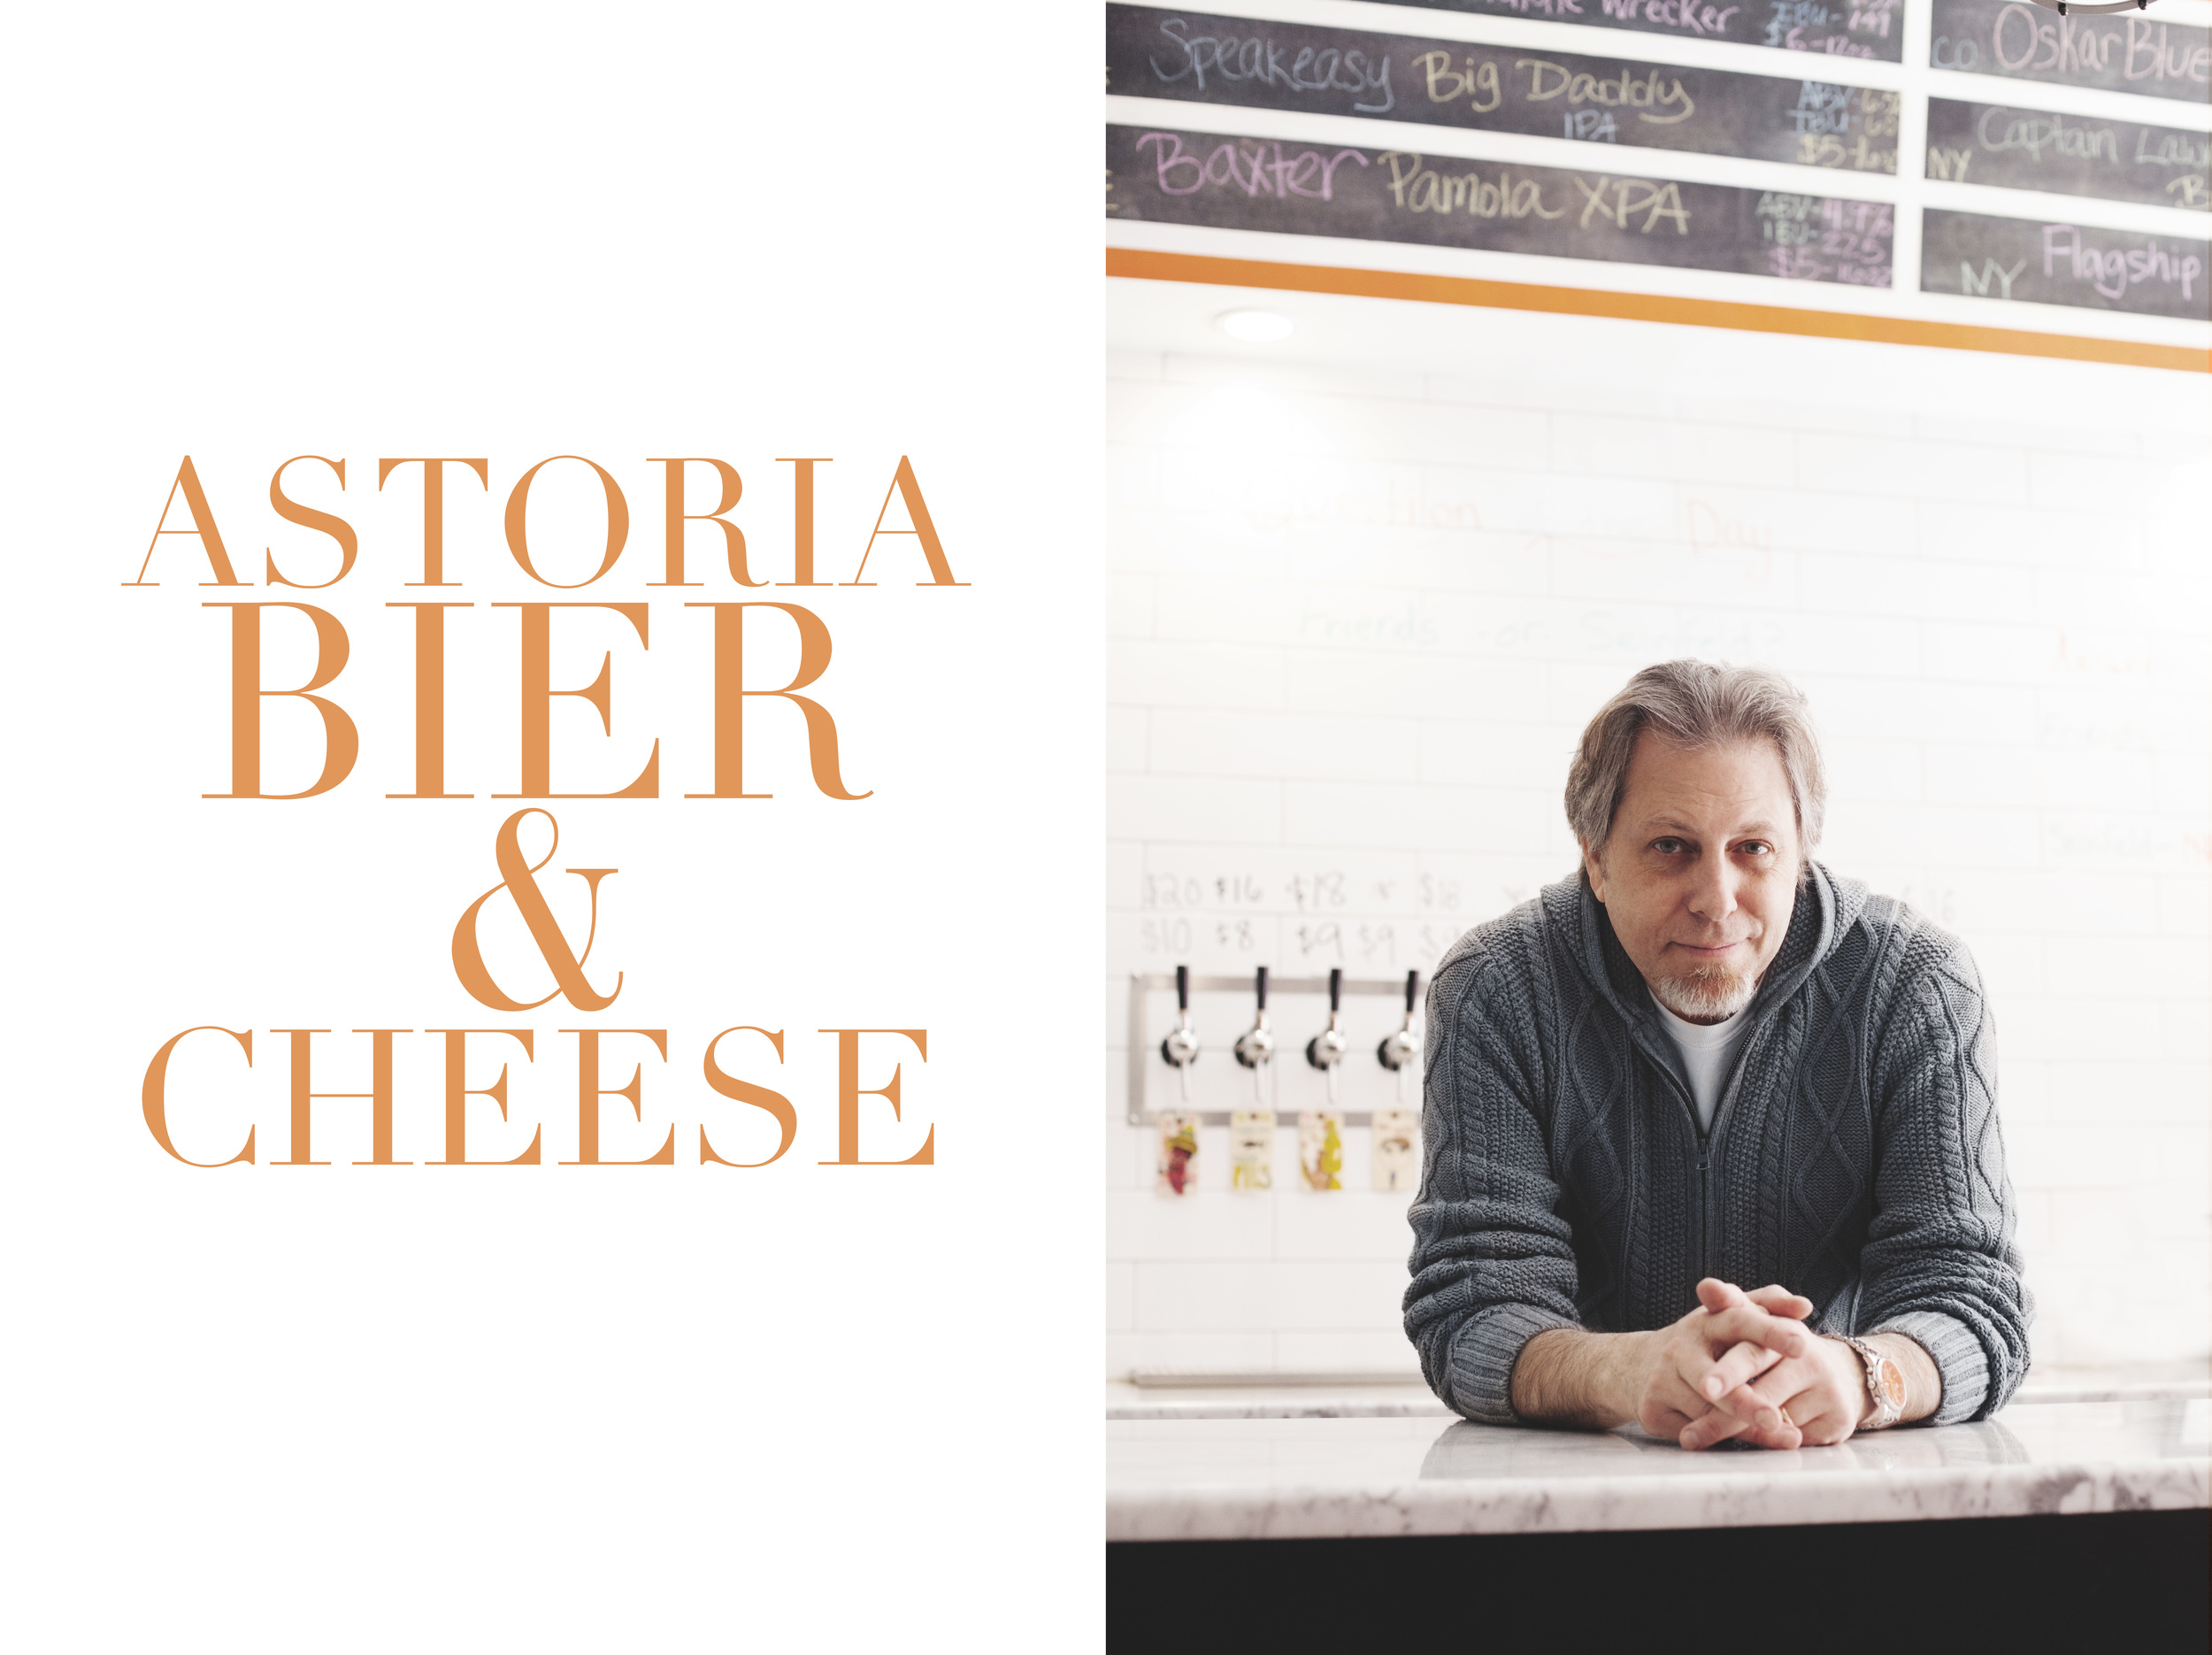 Astoria_BierandCheese_Spread_1.jpg